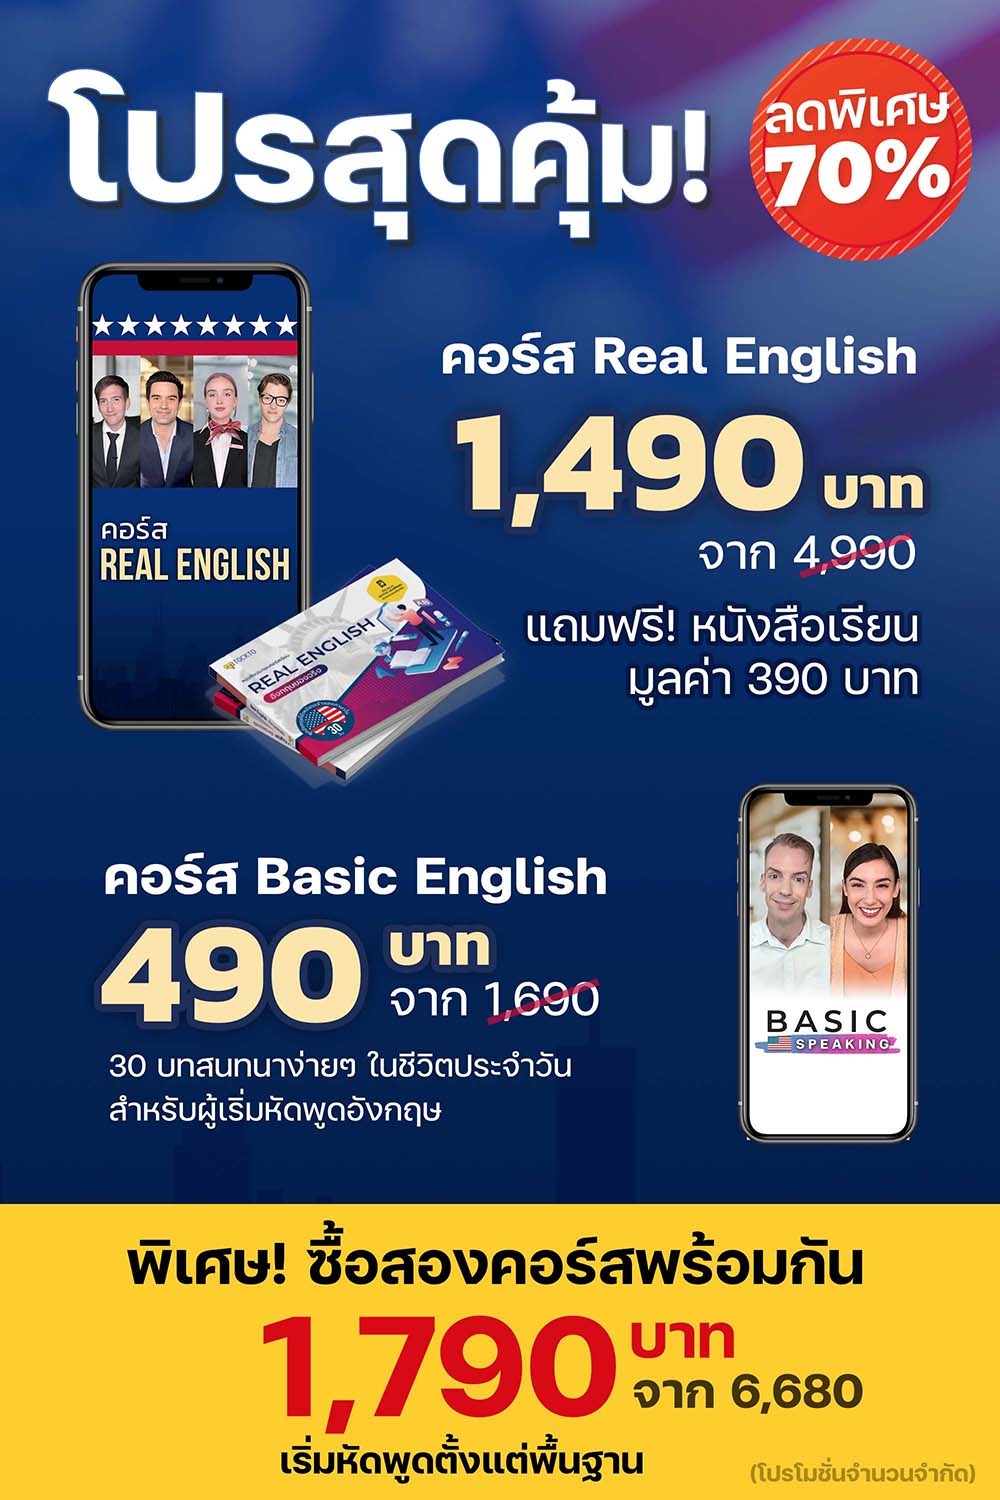 Real English Promotion